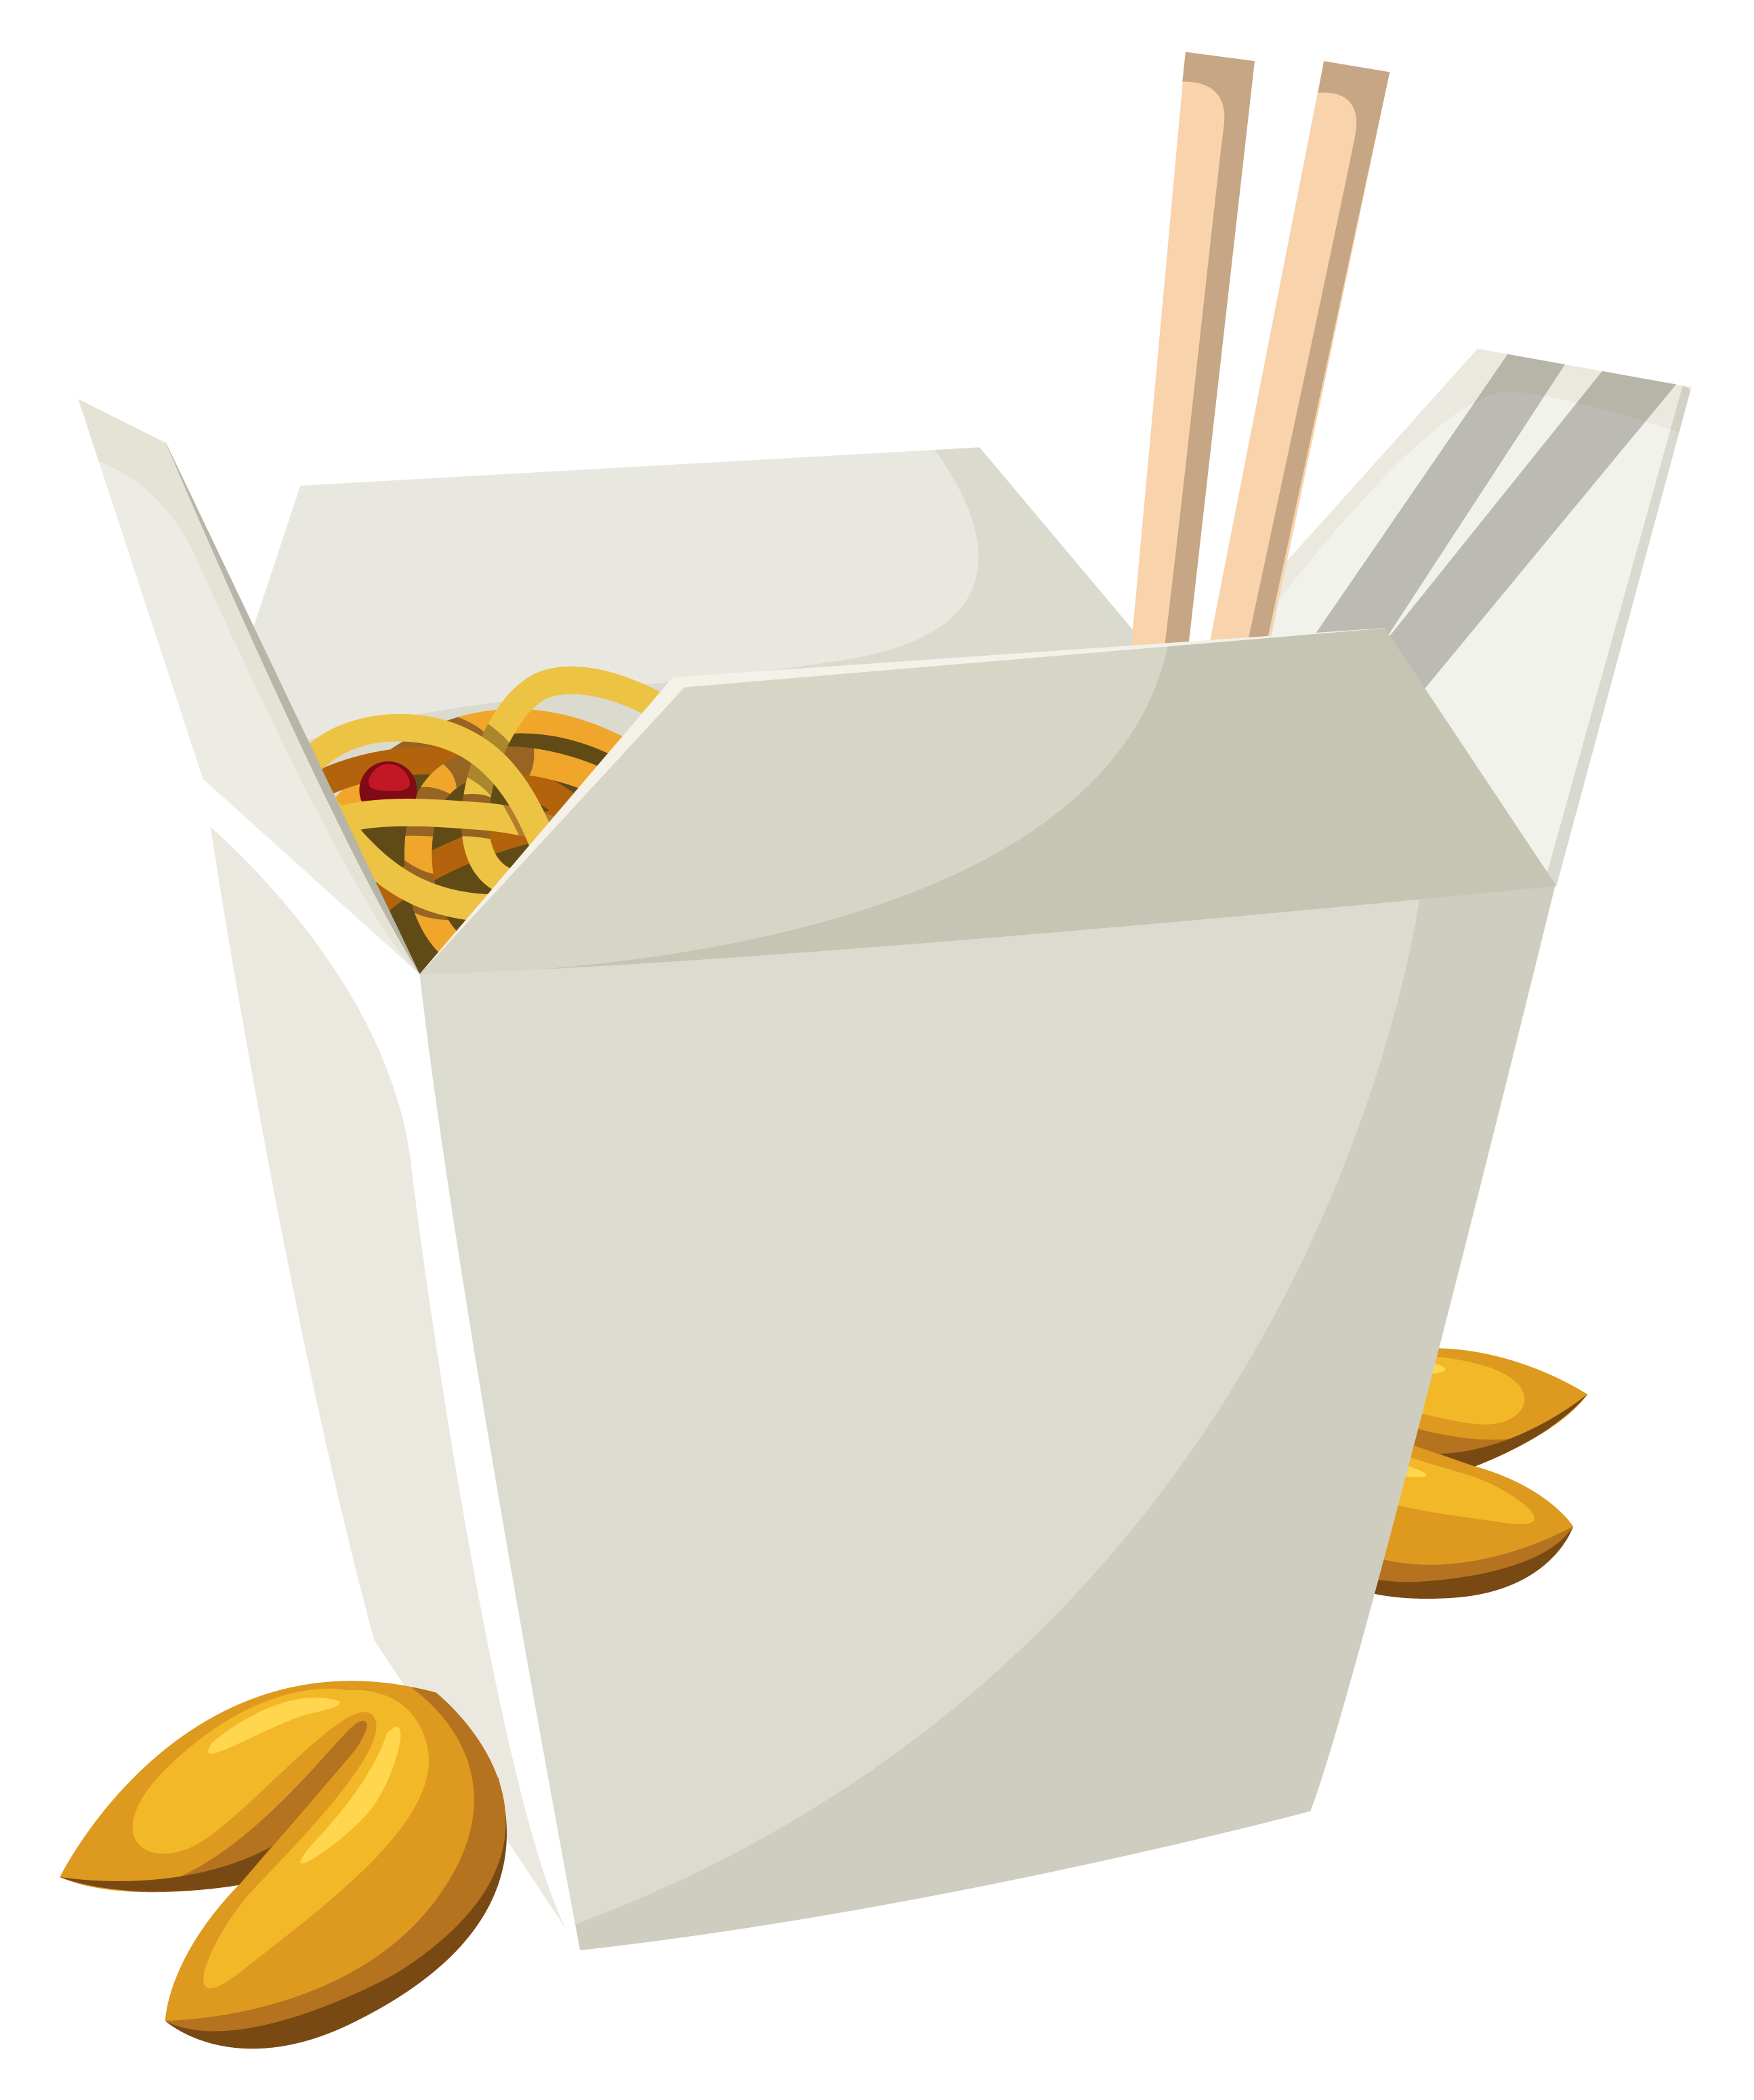 Meal clipart vegetarian meal. Chinese food in box